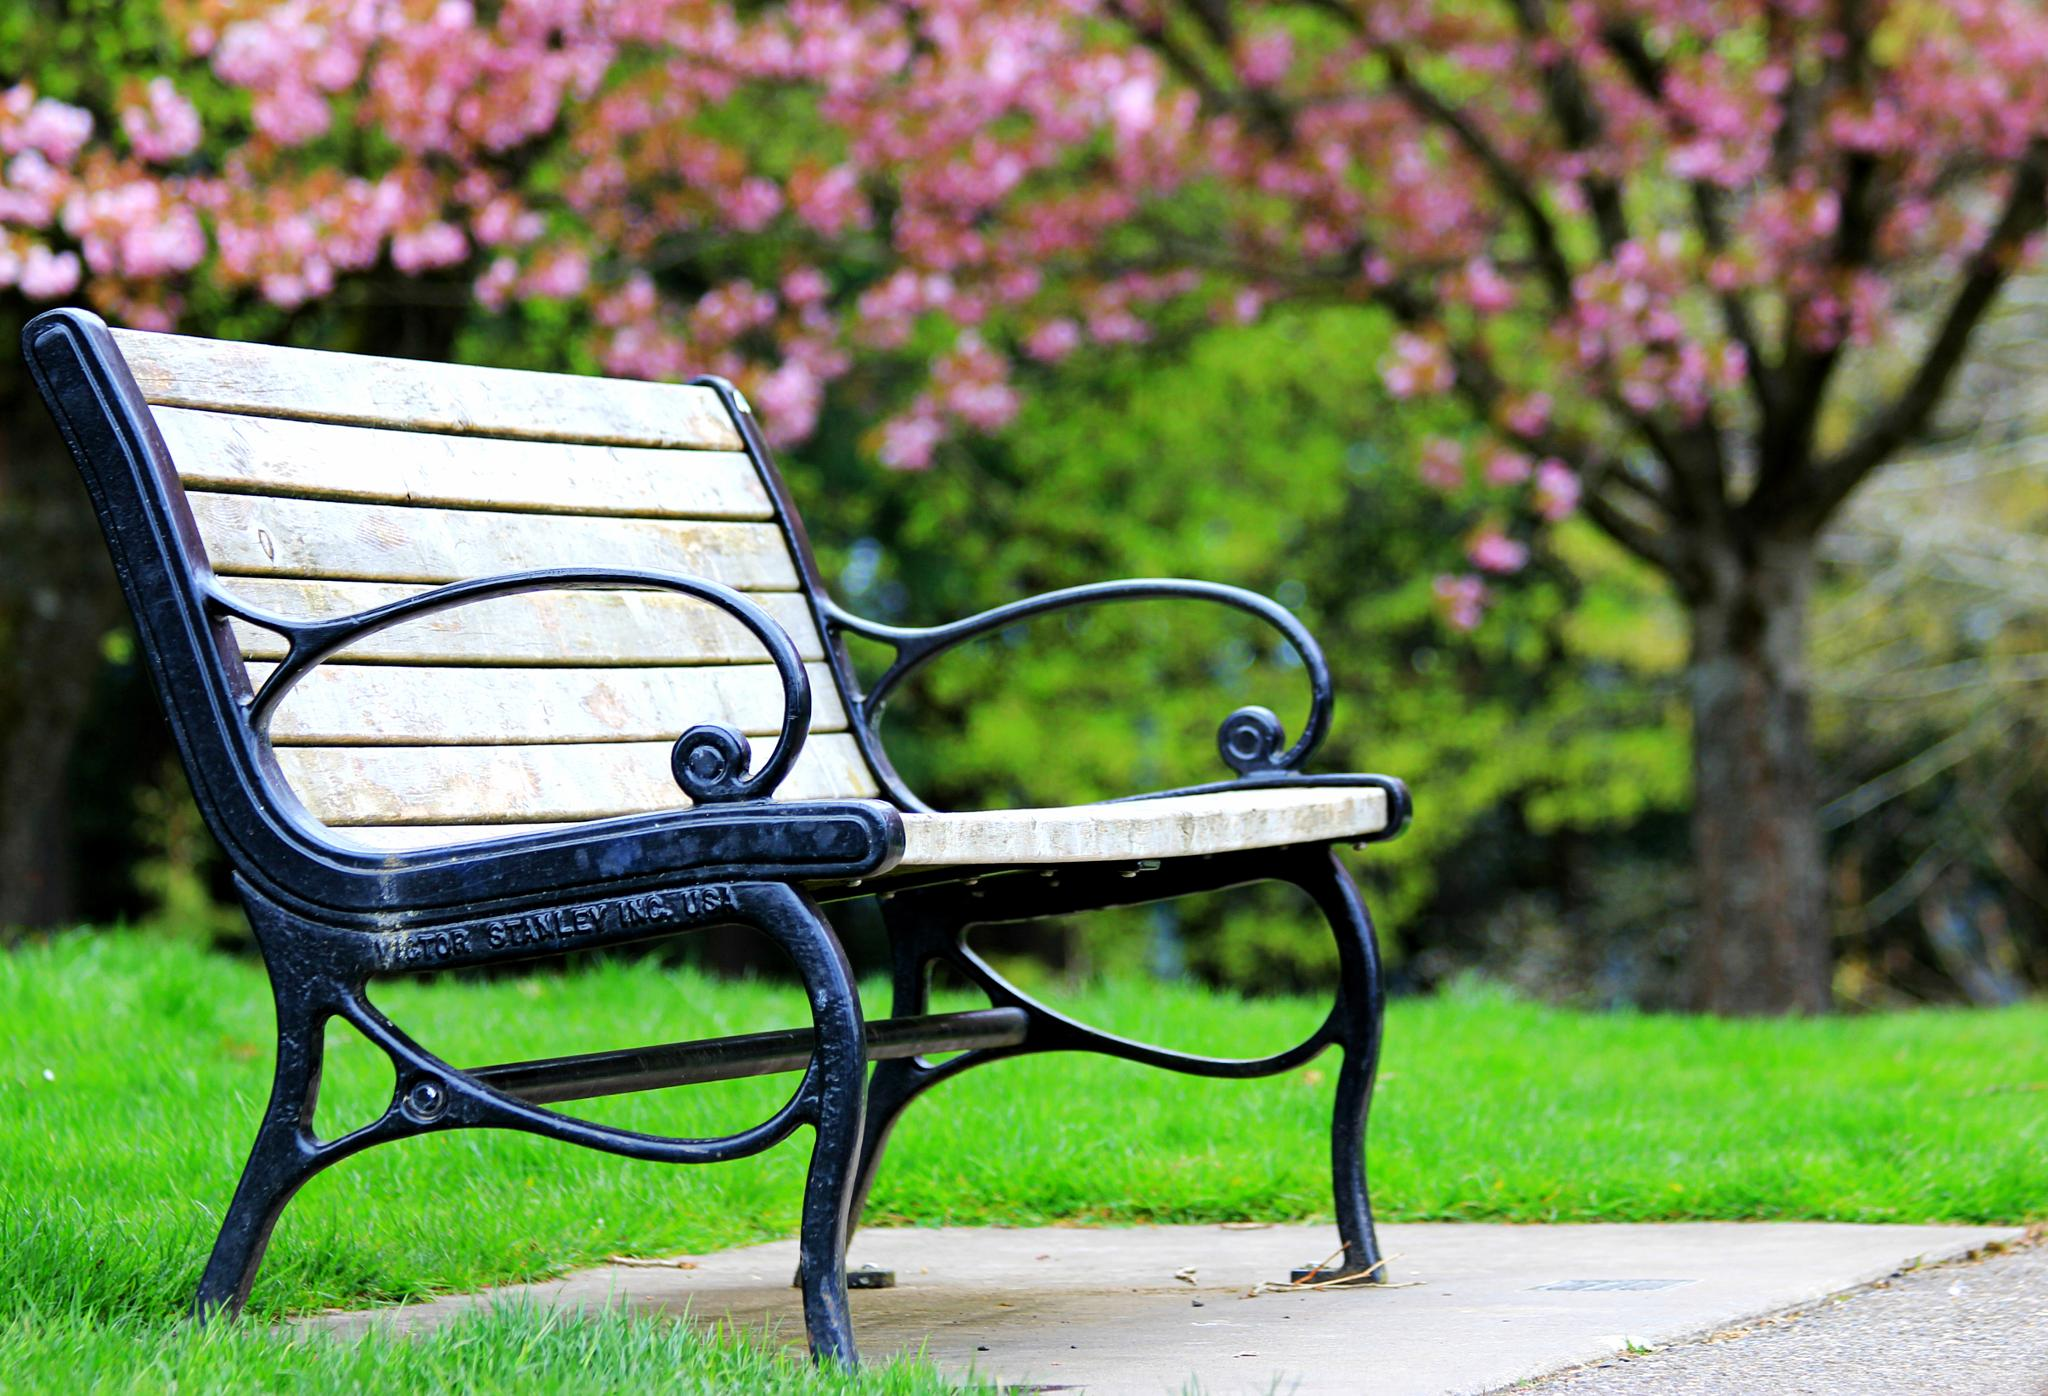 Lonely Bench by karmel